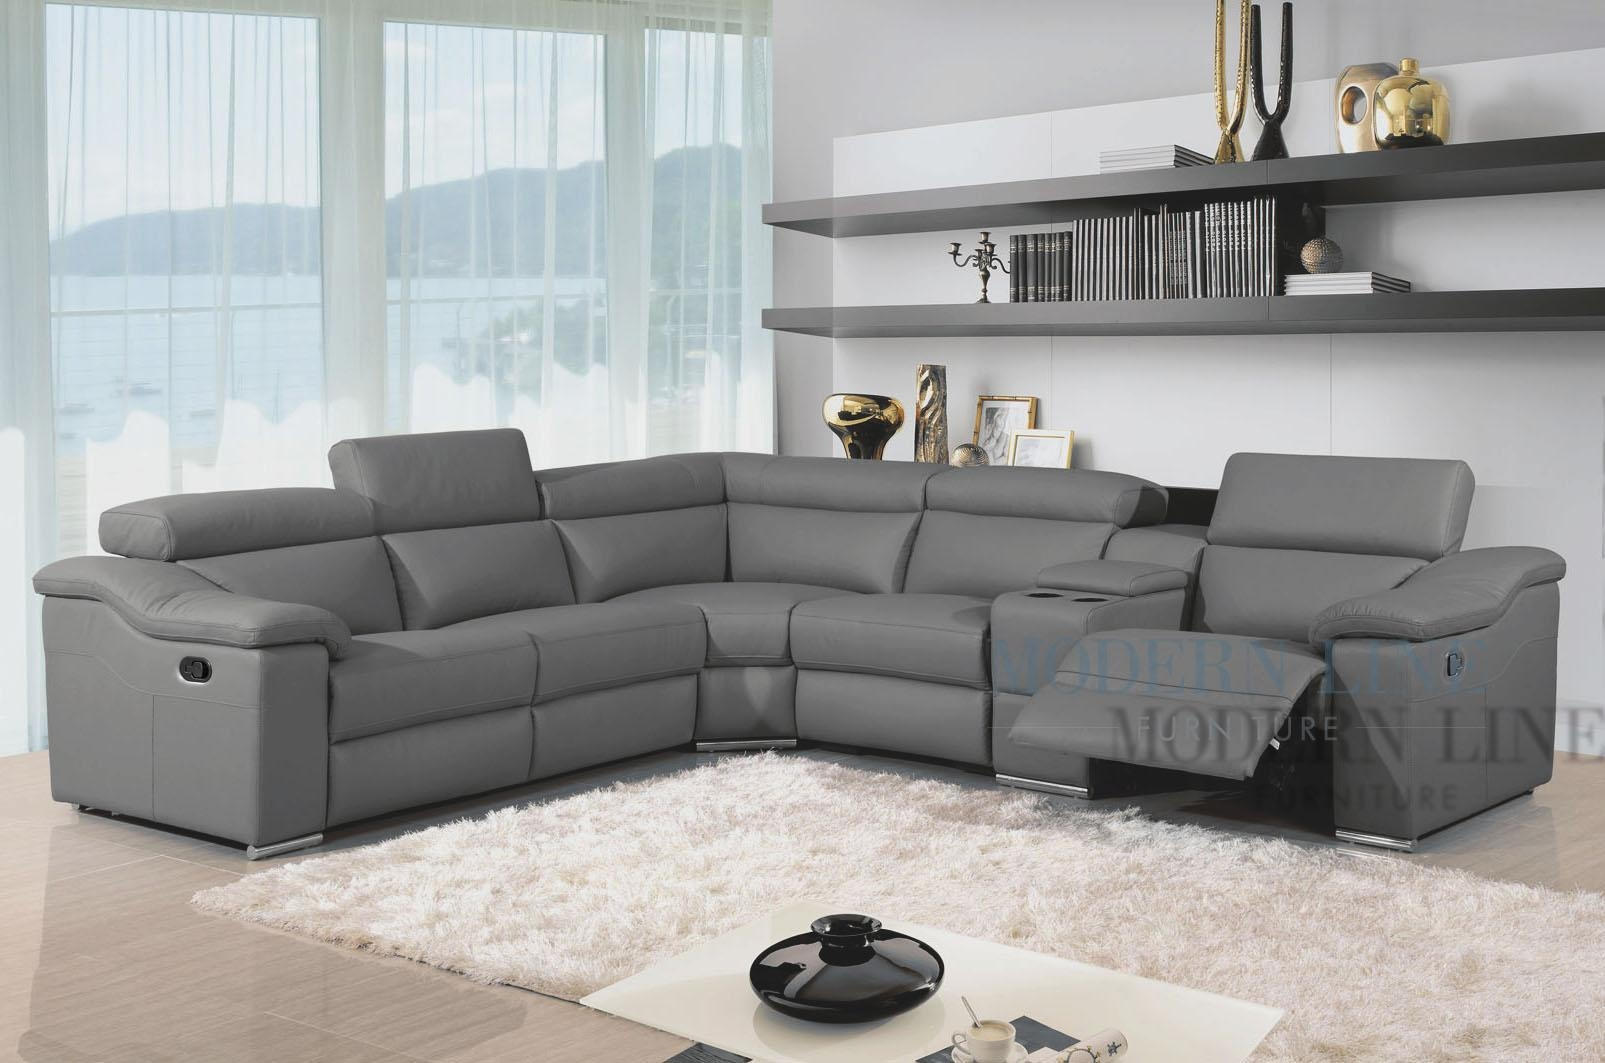 Furniture: Fantastic Sectional Couches With Recliners For Your In Cheap Reclining Sectionals (View 2 of 15)